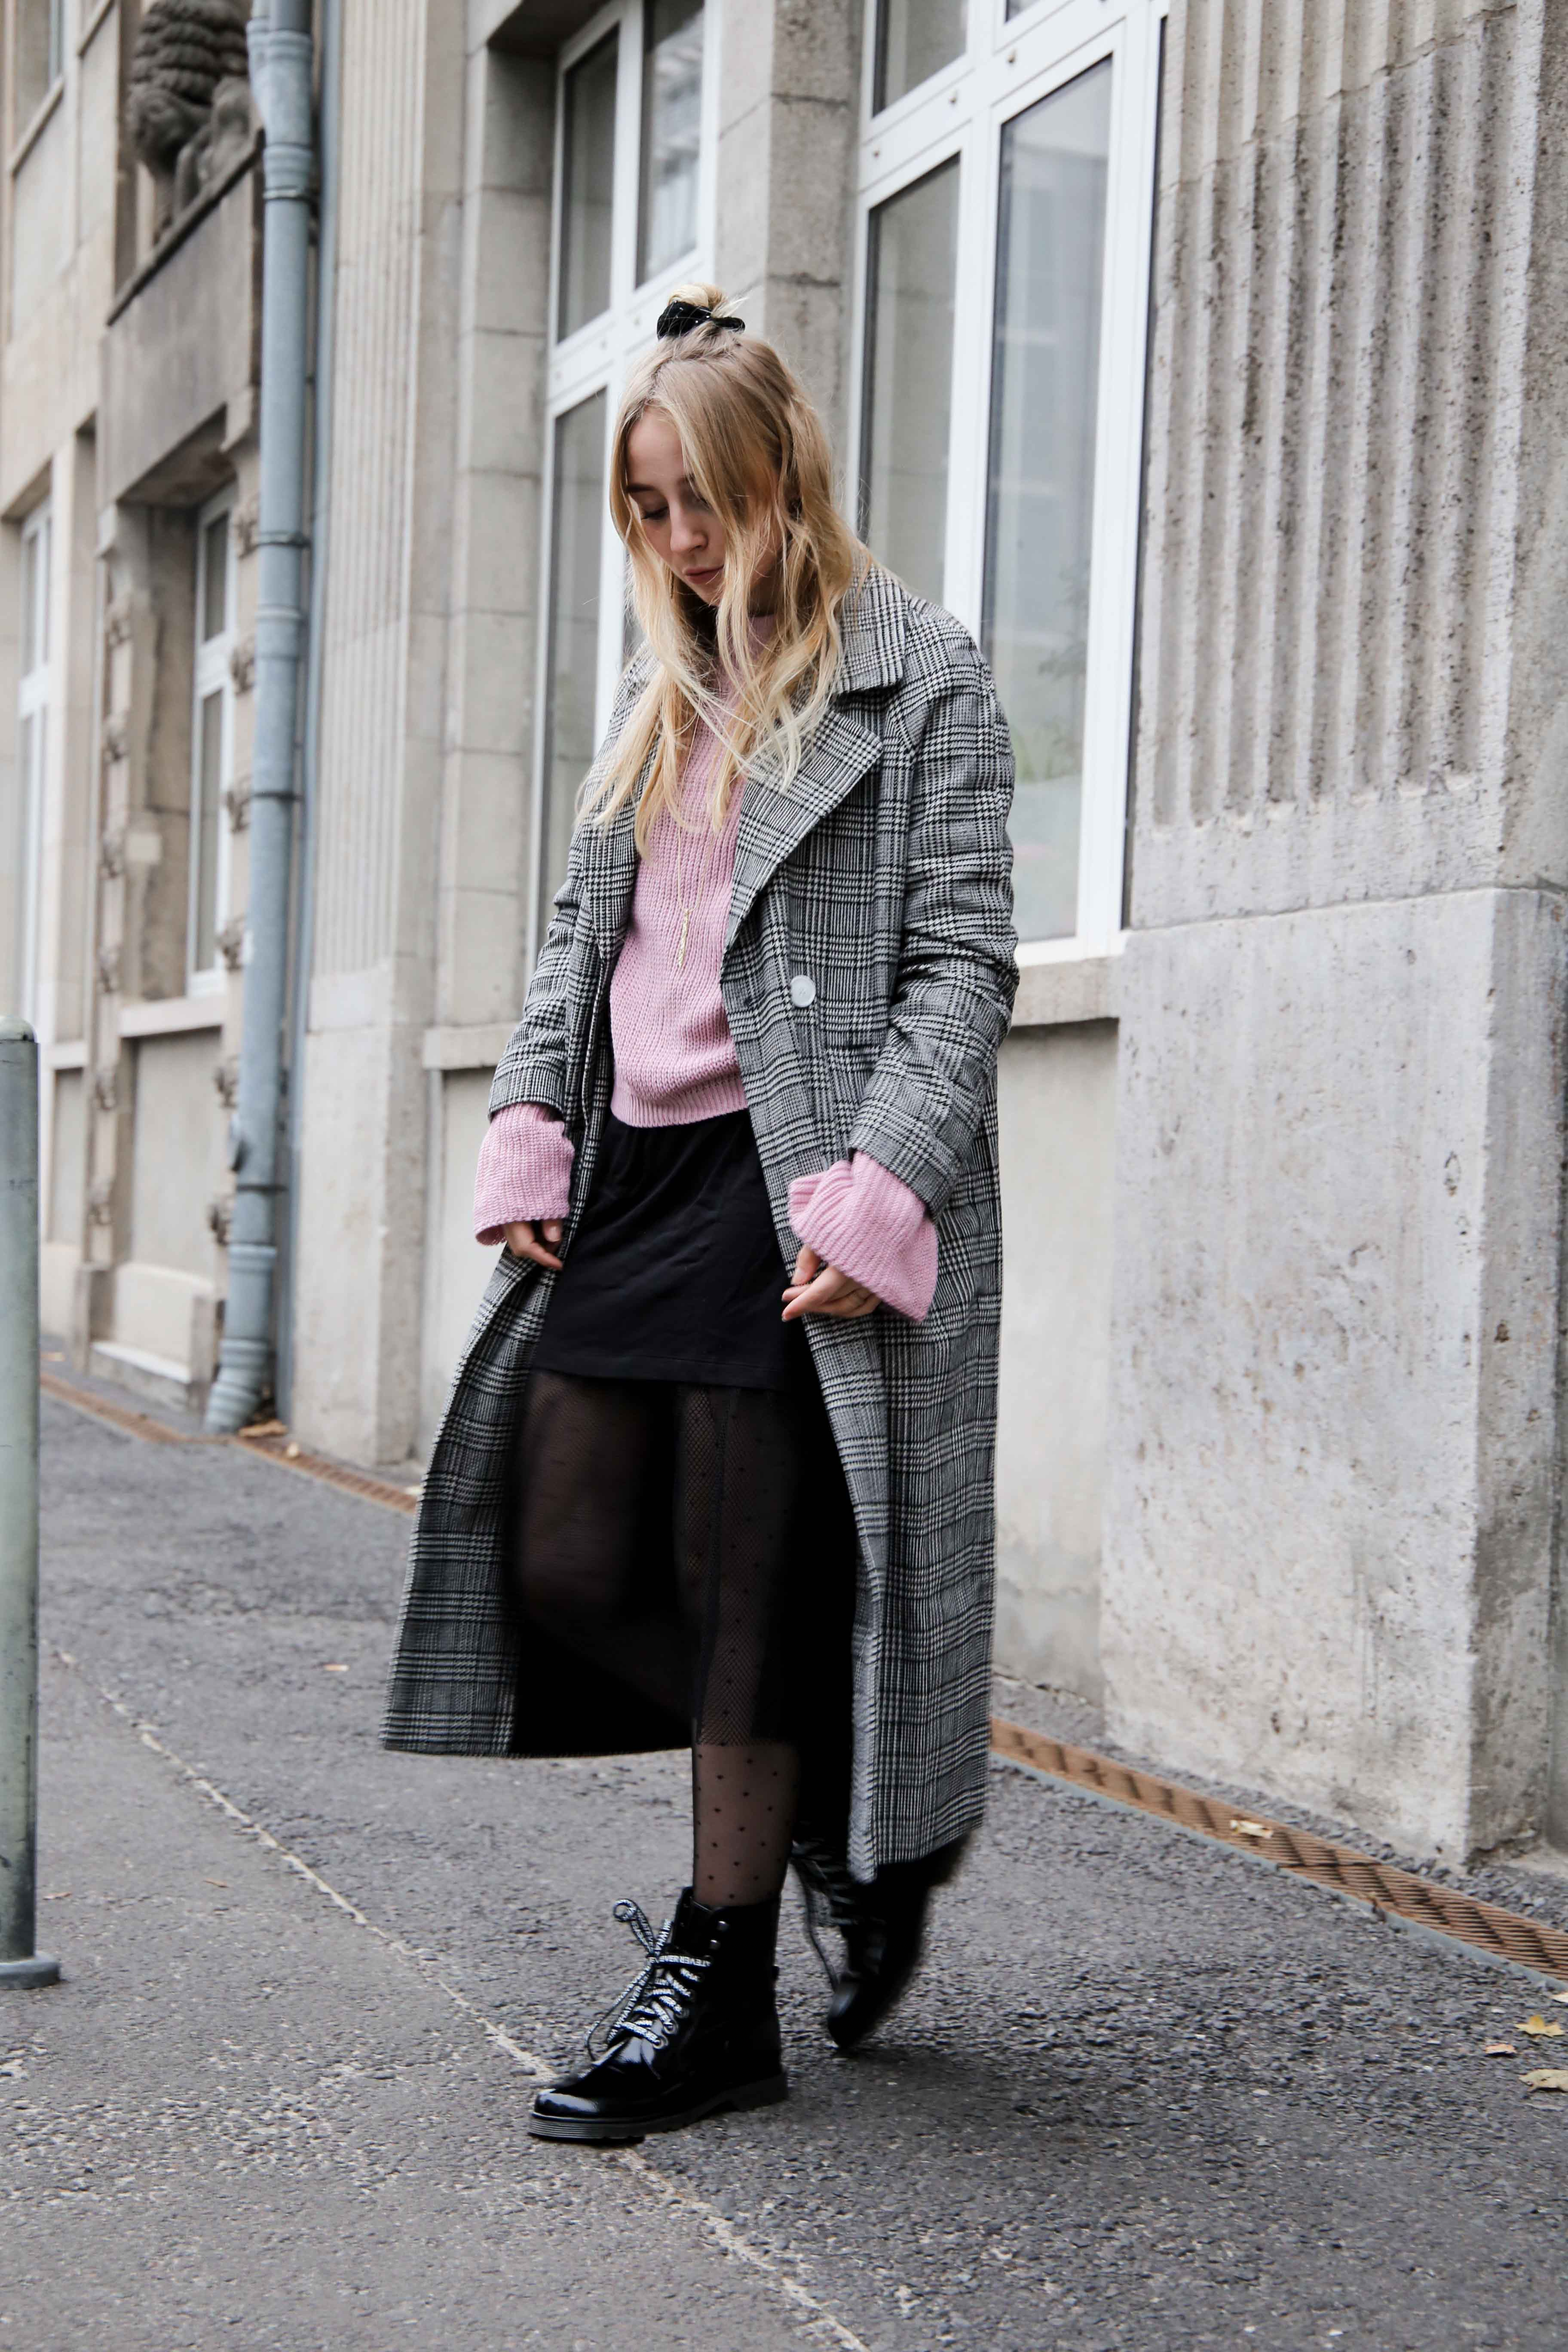 herbst-outfit-glencheck-muster-mantel-mode-blog-berlin